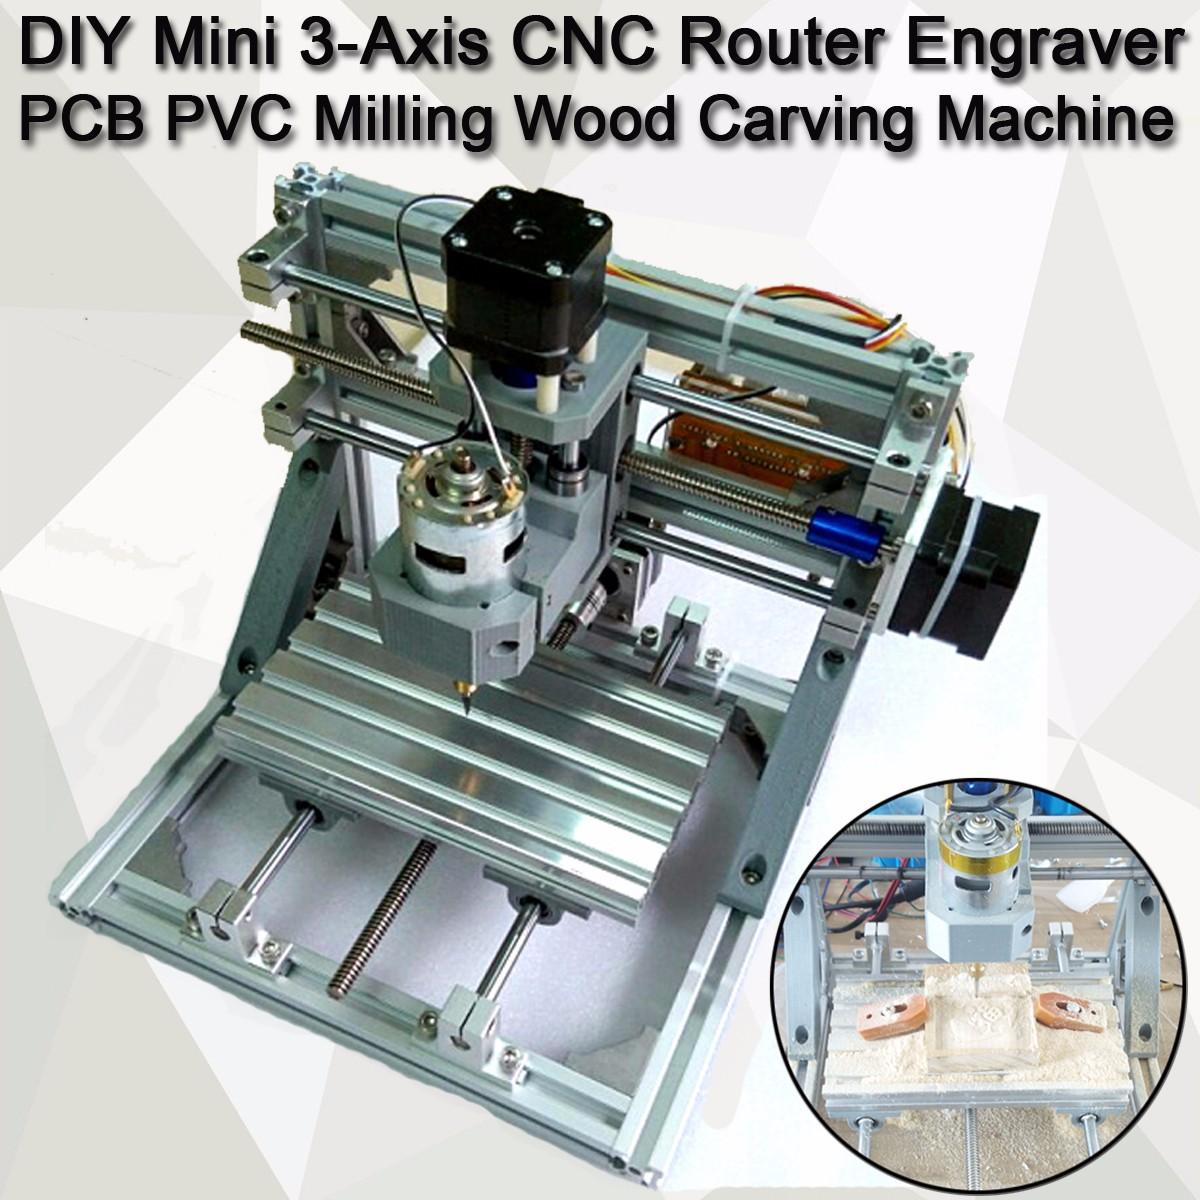 DIY Mini 3 Axis Router CNC 1610 GRBL Control CNC Machine Engraver PCB PVC Milling Wood Carving Machine working area 16x10.5x3cm cnc 1610 with er11 diy cnc engraving machine mini pcb milling machine wood carving machine cnc router cnc1610 best toys gifts